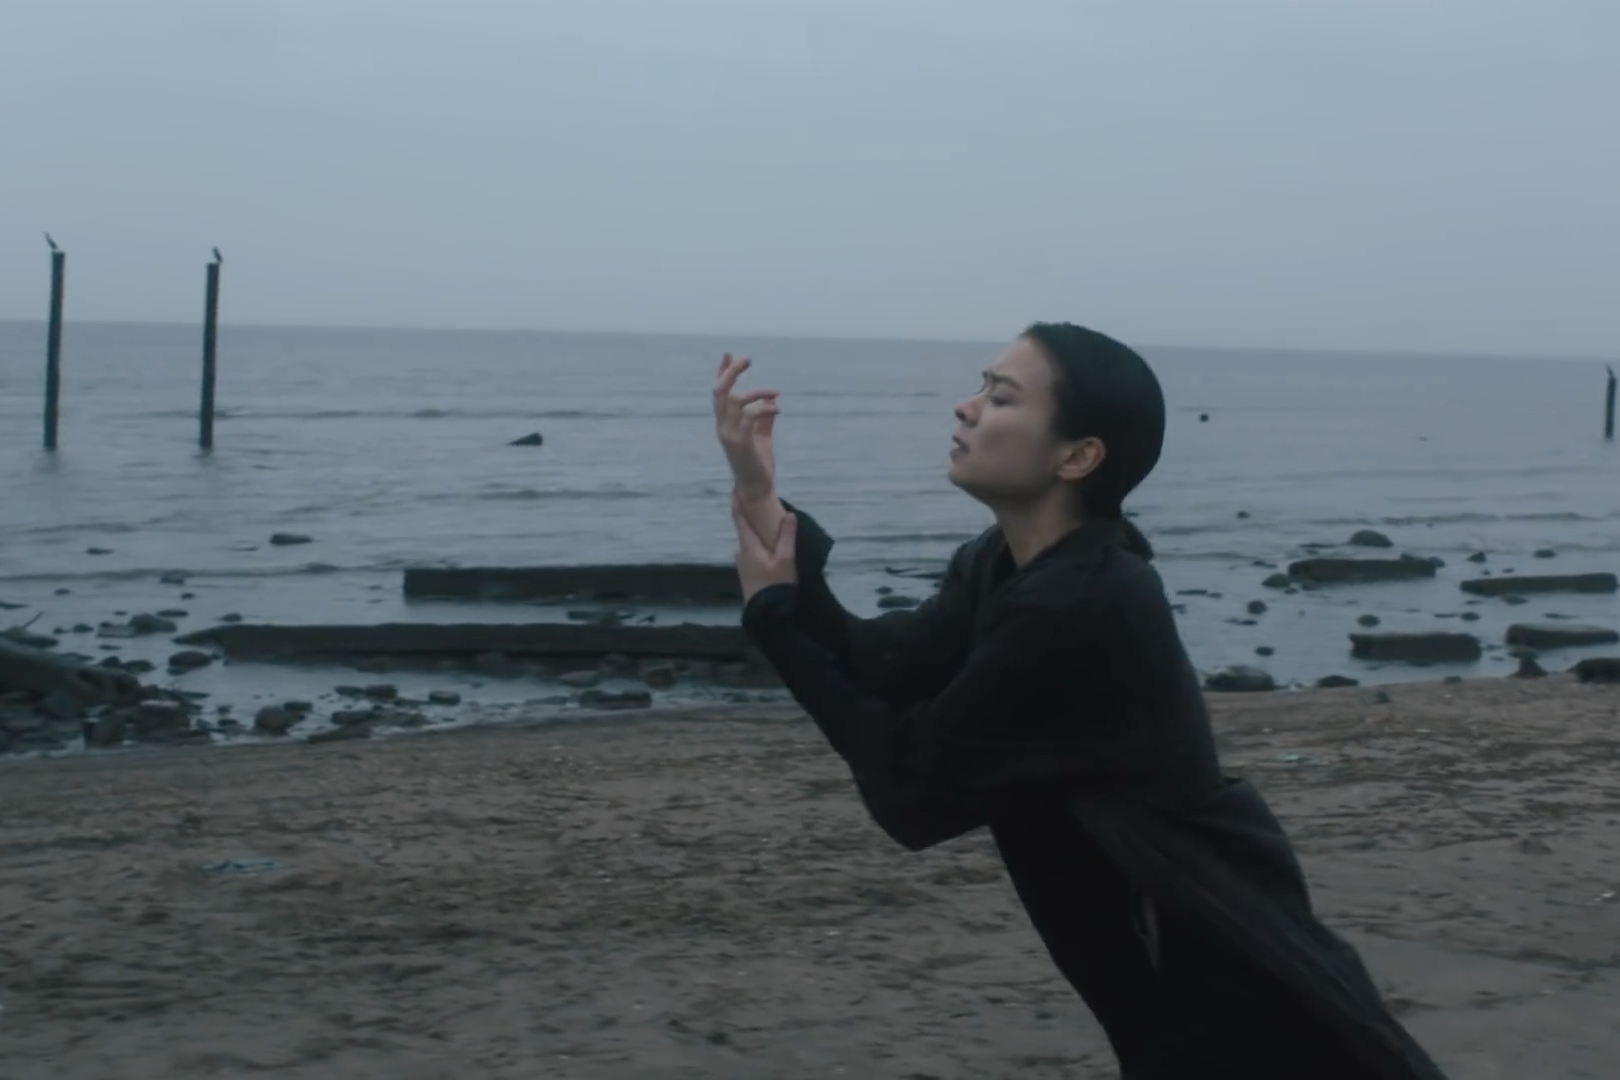 mitski-new-album-be-the-cowboy-geyser-video-1526319938-compressed.png